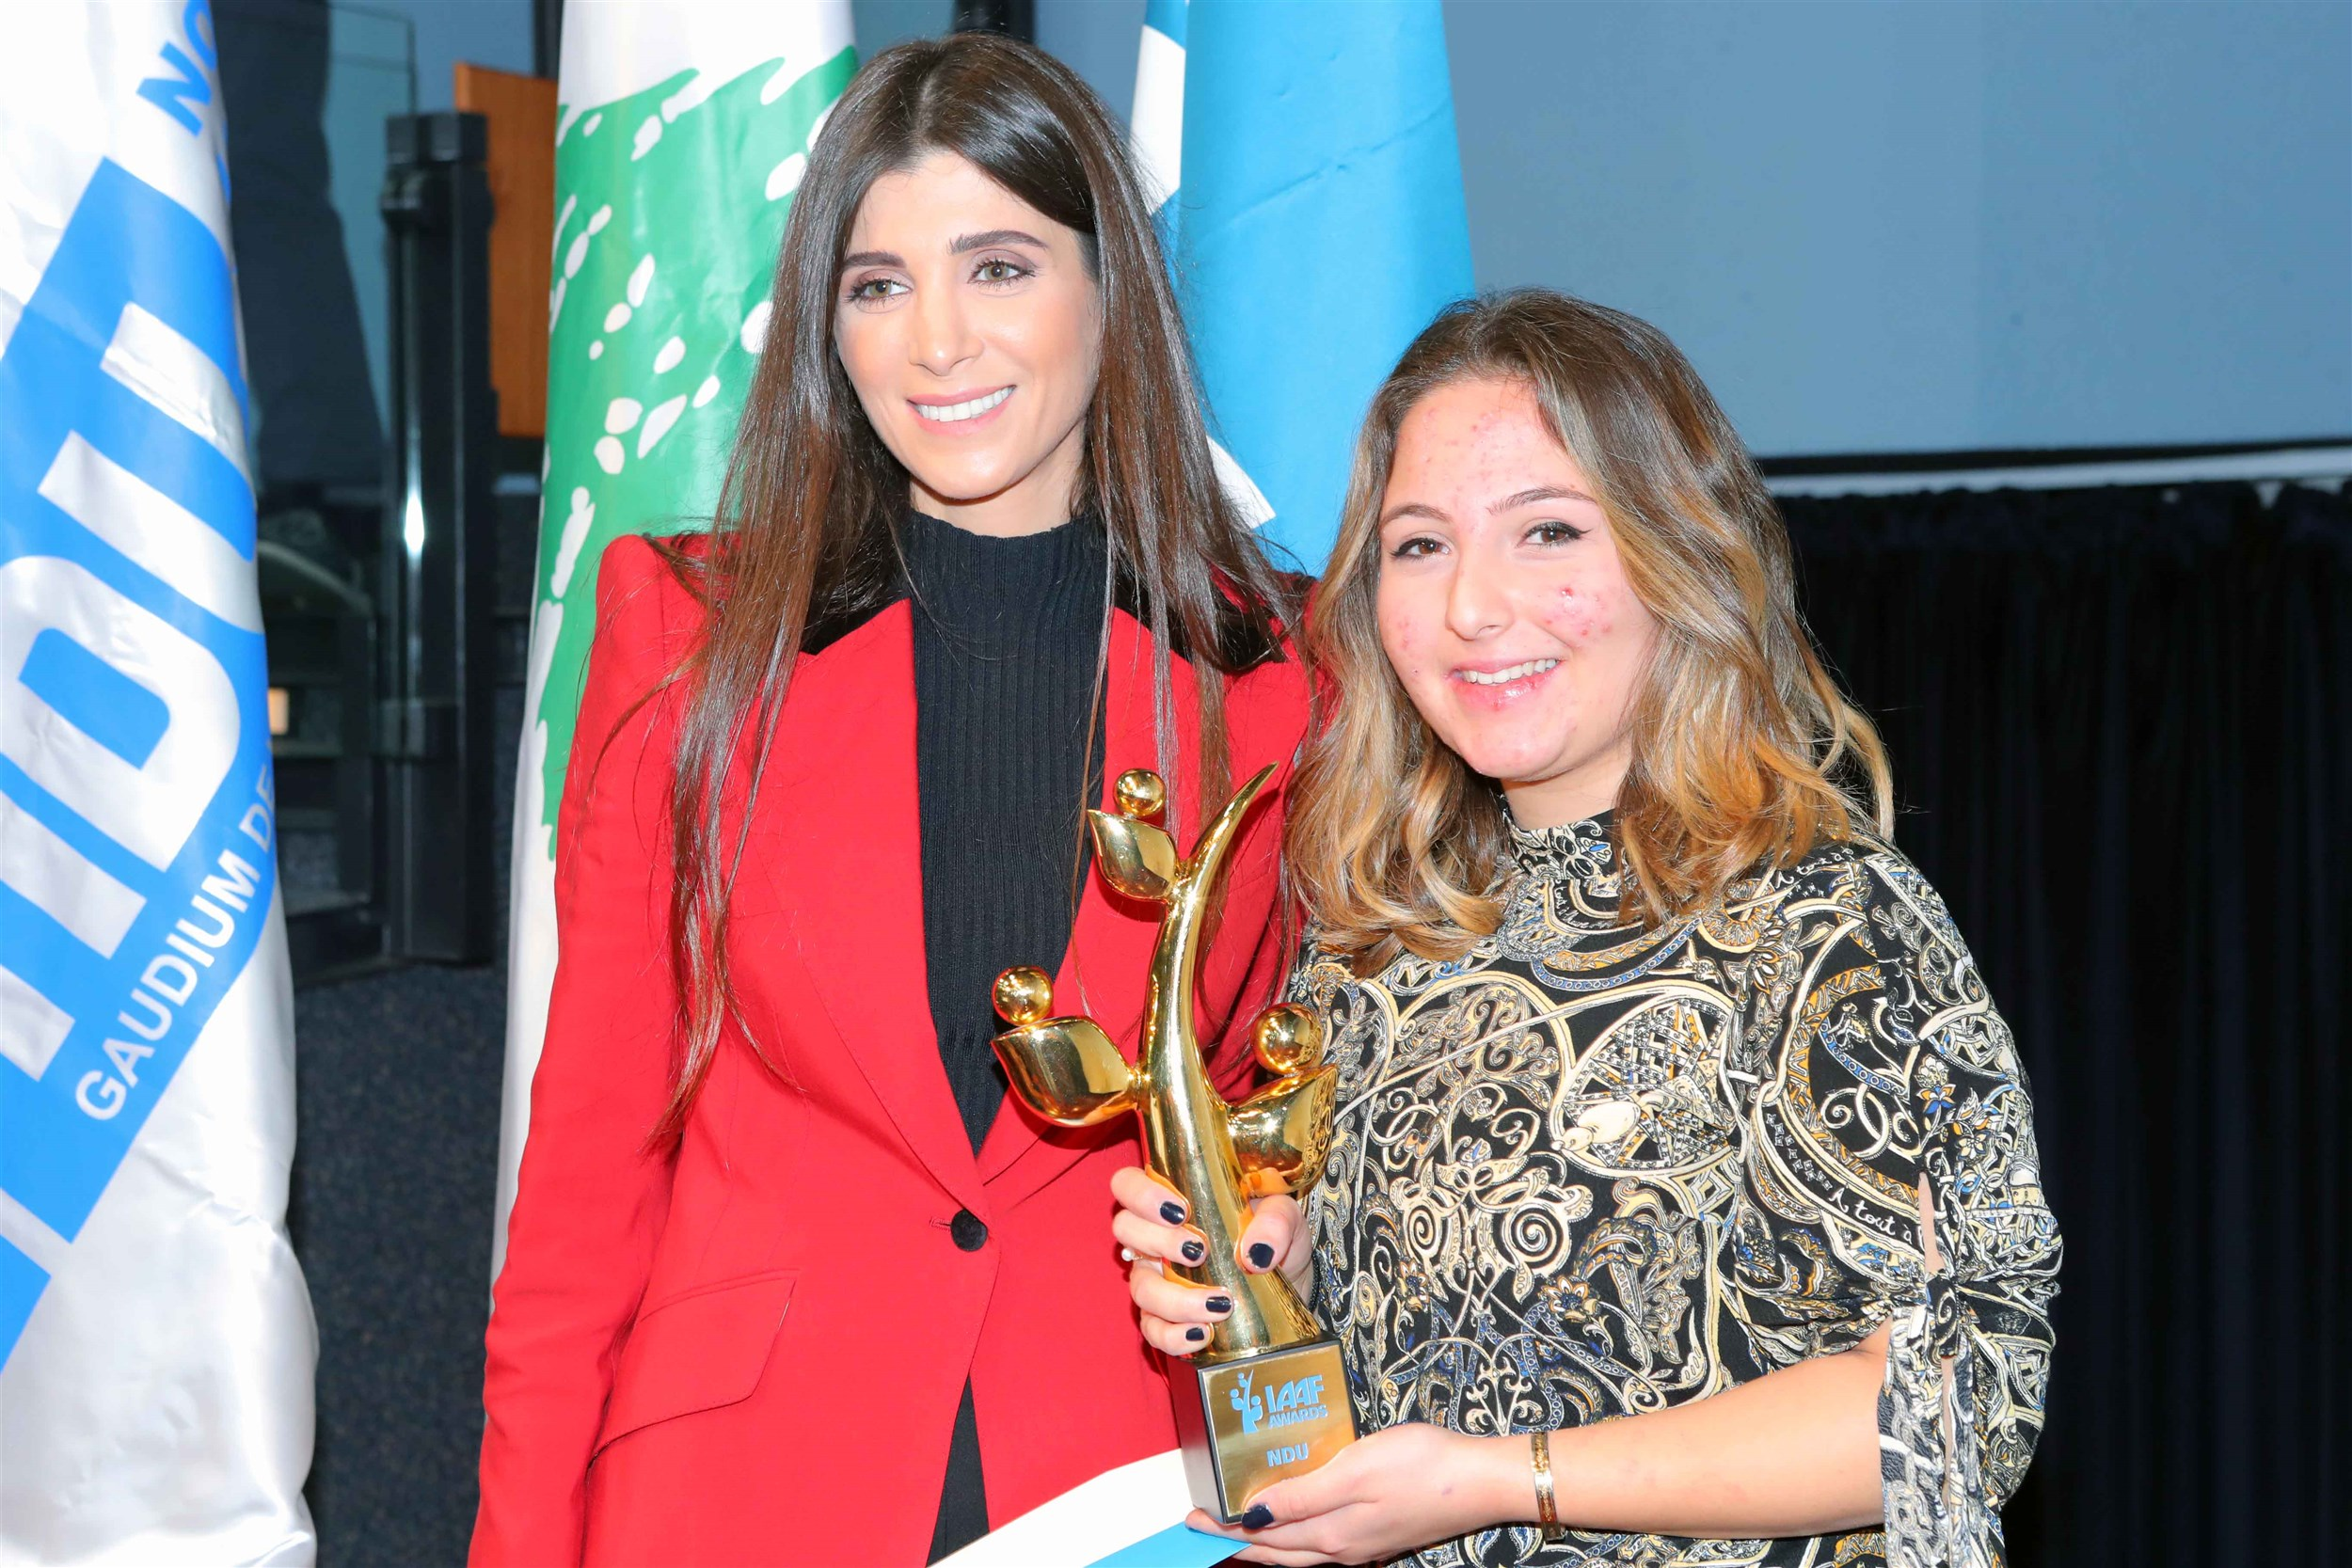 """mrs inas al jarmakani with the winning student tia wakim after receiving her trophy for her project titled """"pharma lebanon"""", an app which will help keep track of all pharmaceuticals in lebanon, their quality and availability."""